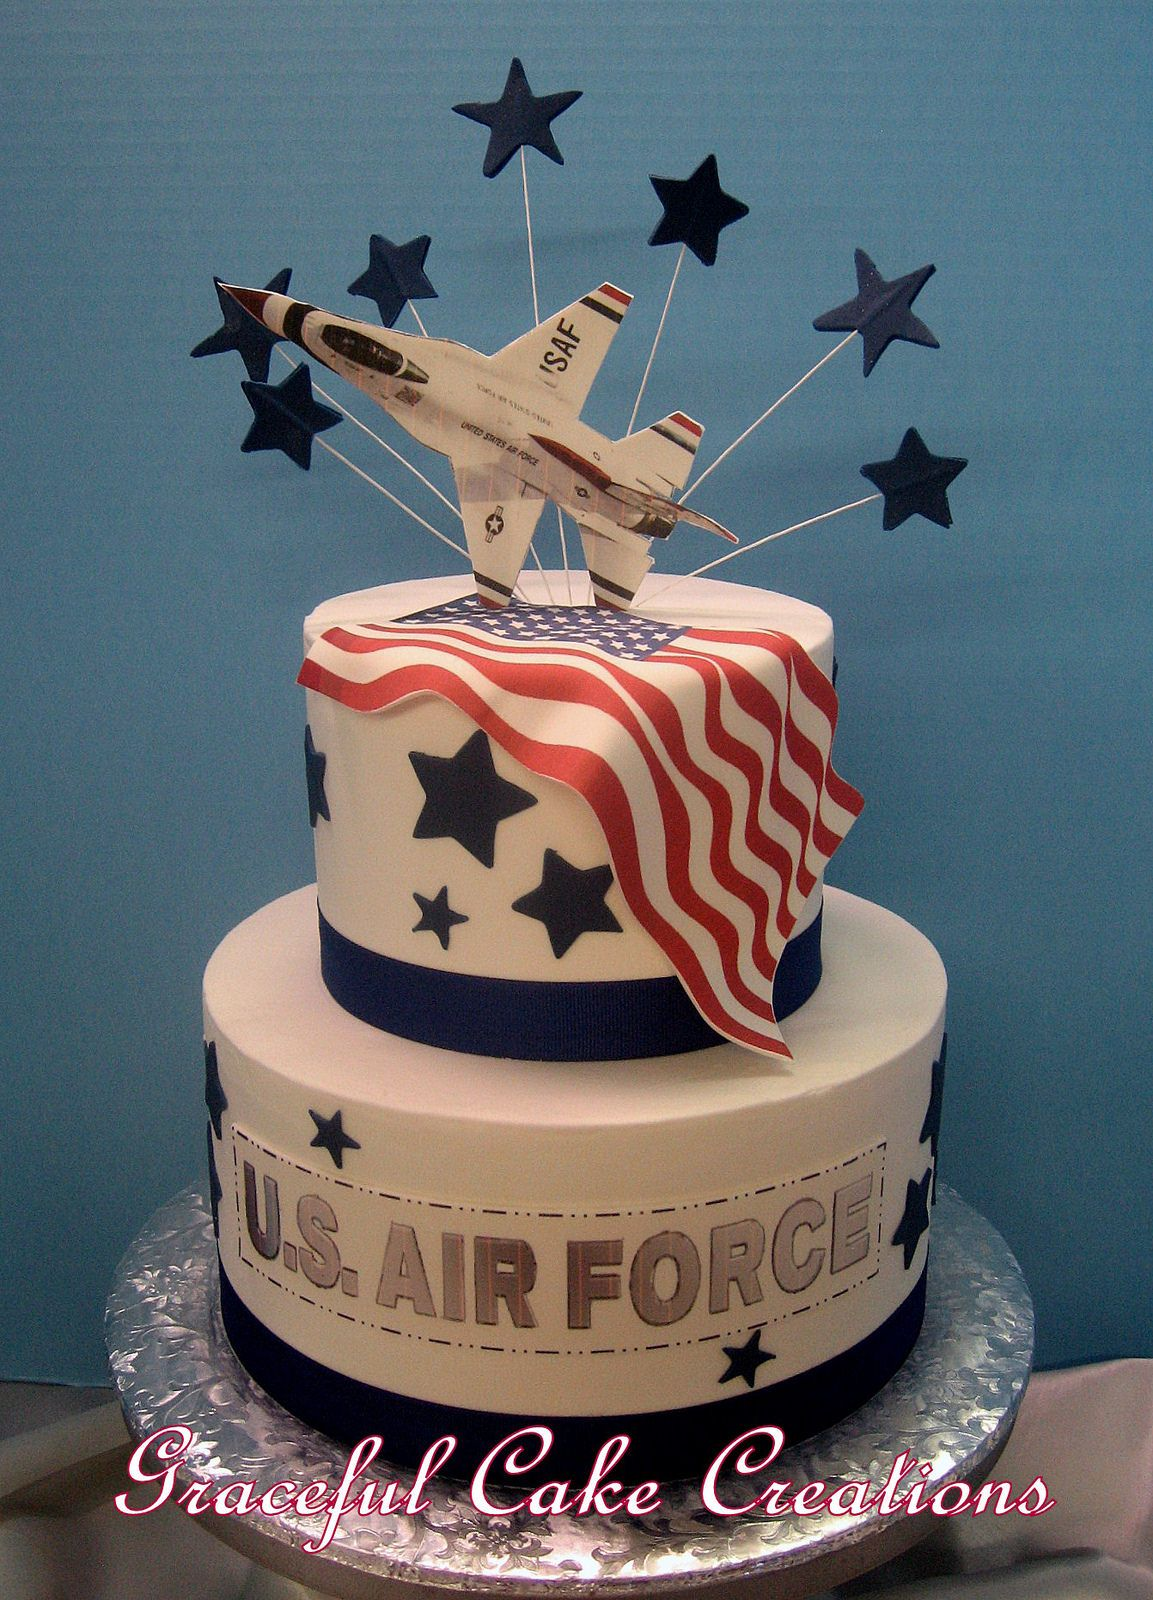 air force wedding cake designs u s air groom s cake specialty cakes by graceful 10635